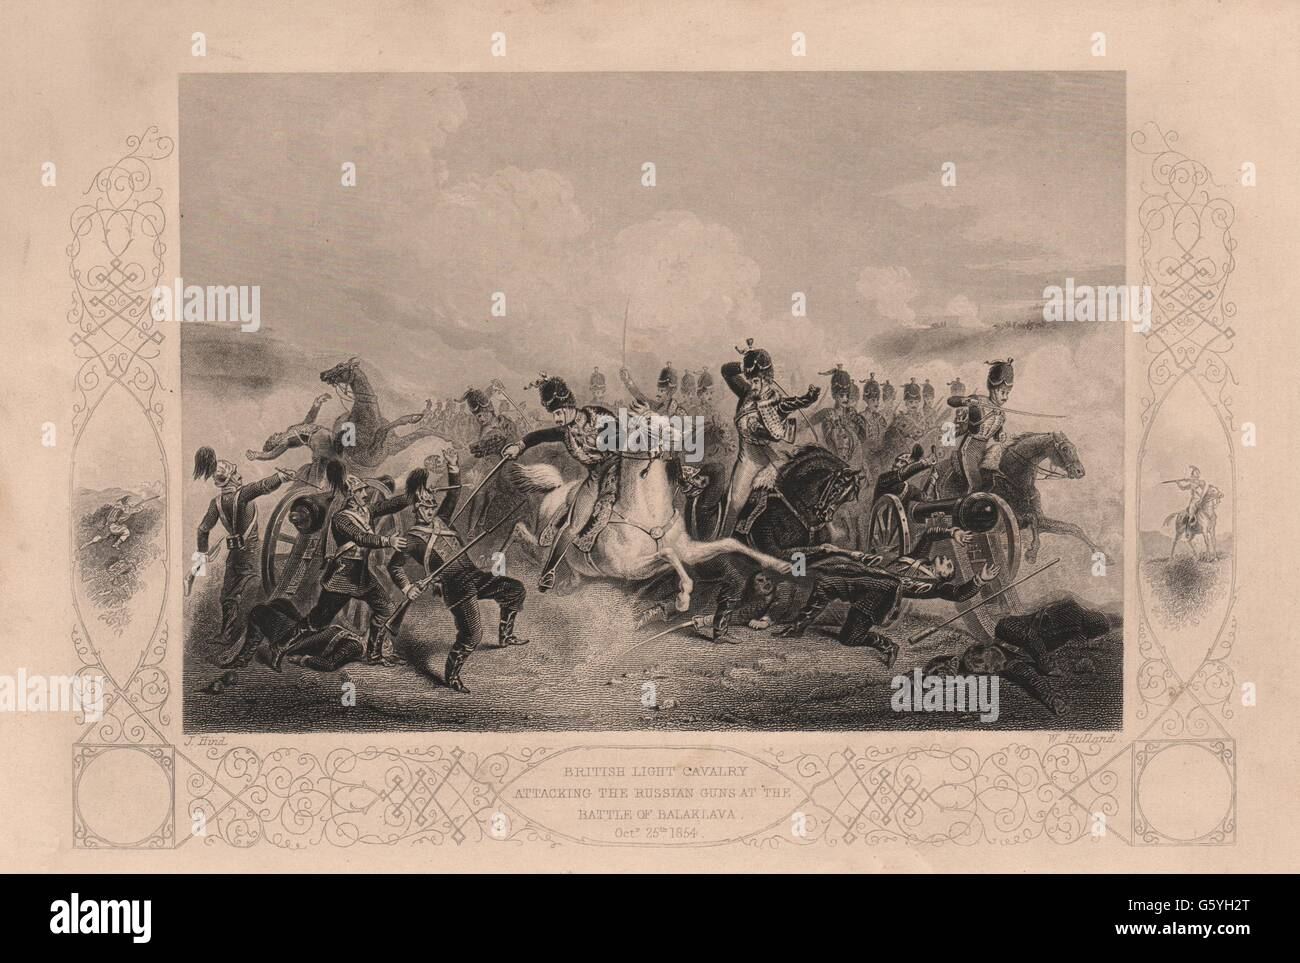 CHARGE OF THE LIGHT BRIGADE: Cavalry attacking Russians. Battle Balaklava, 1860 - Stock Image